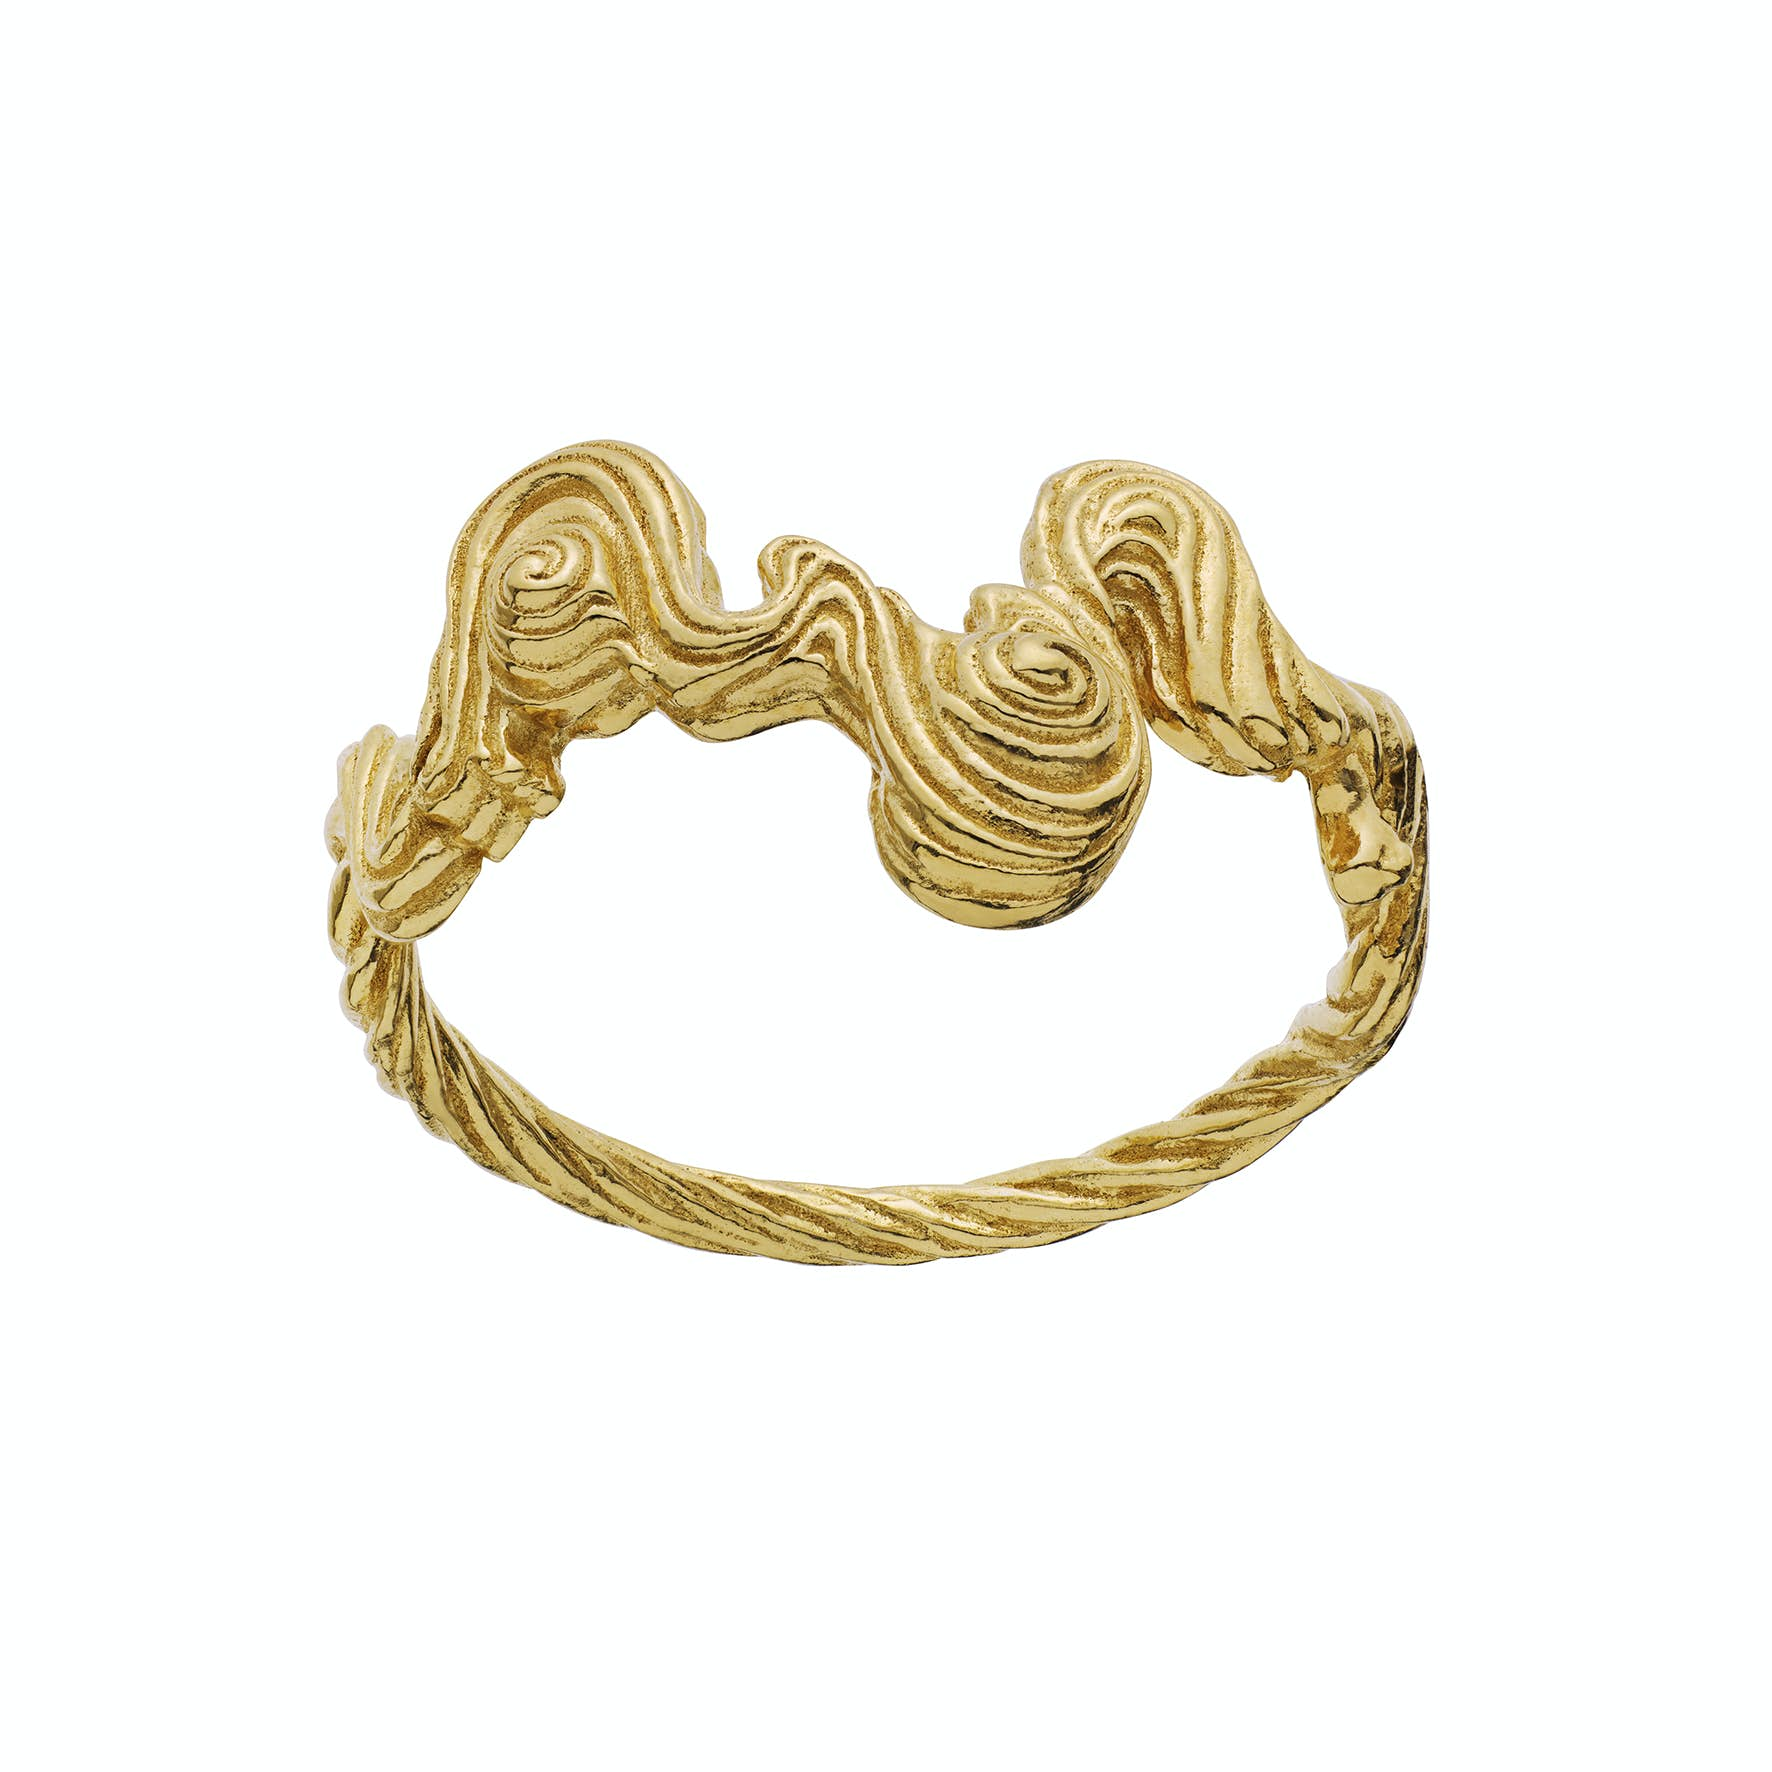 Leto Ring from Maanesten in Goldplated-Silver Sterling 925